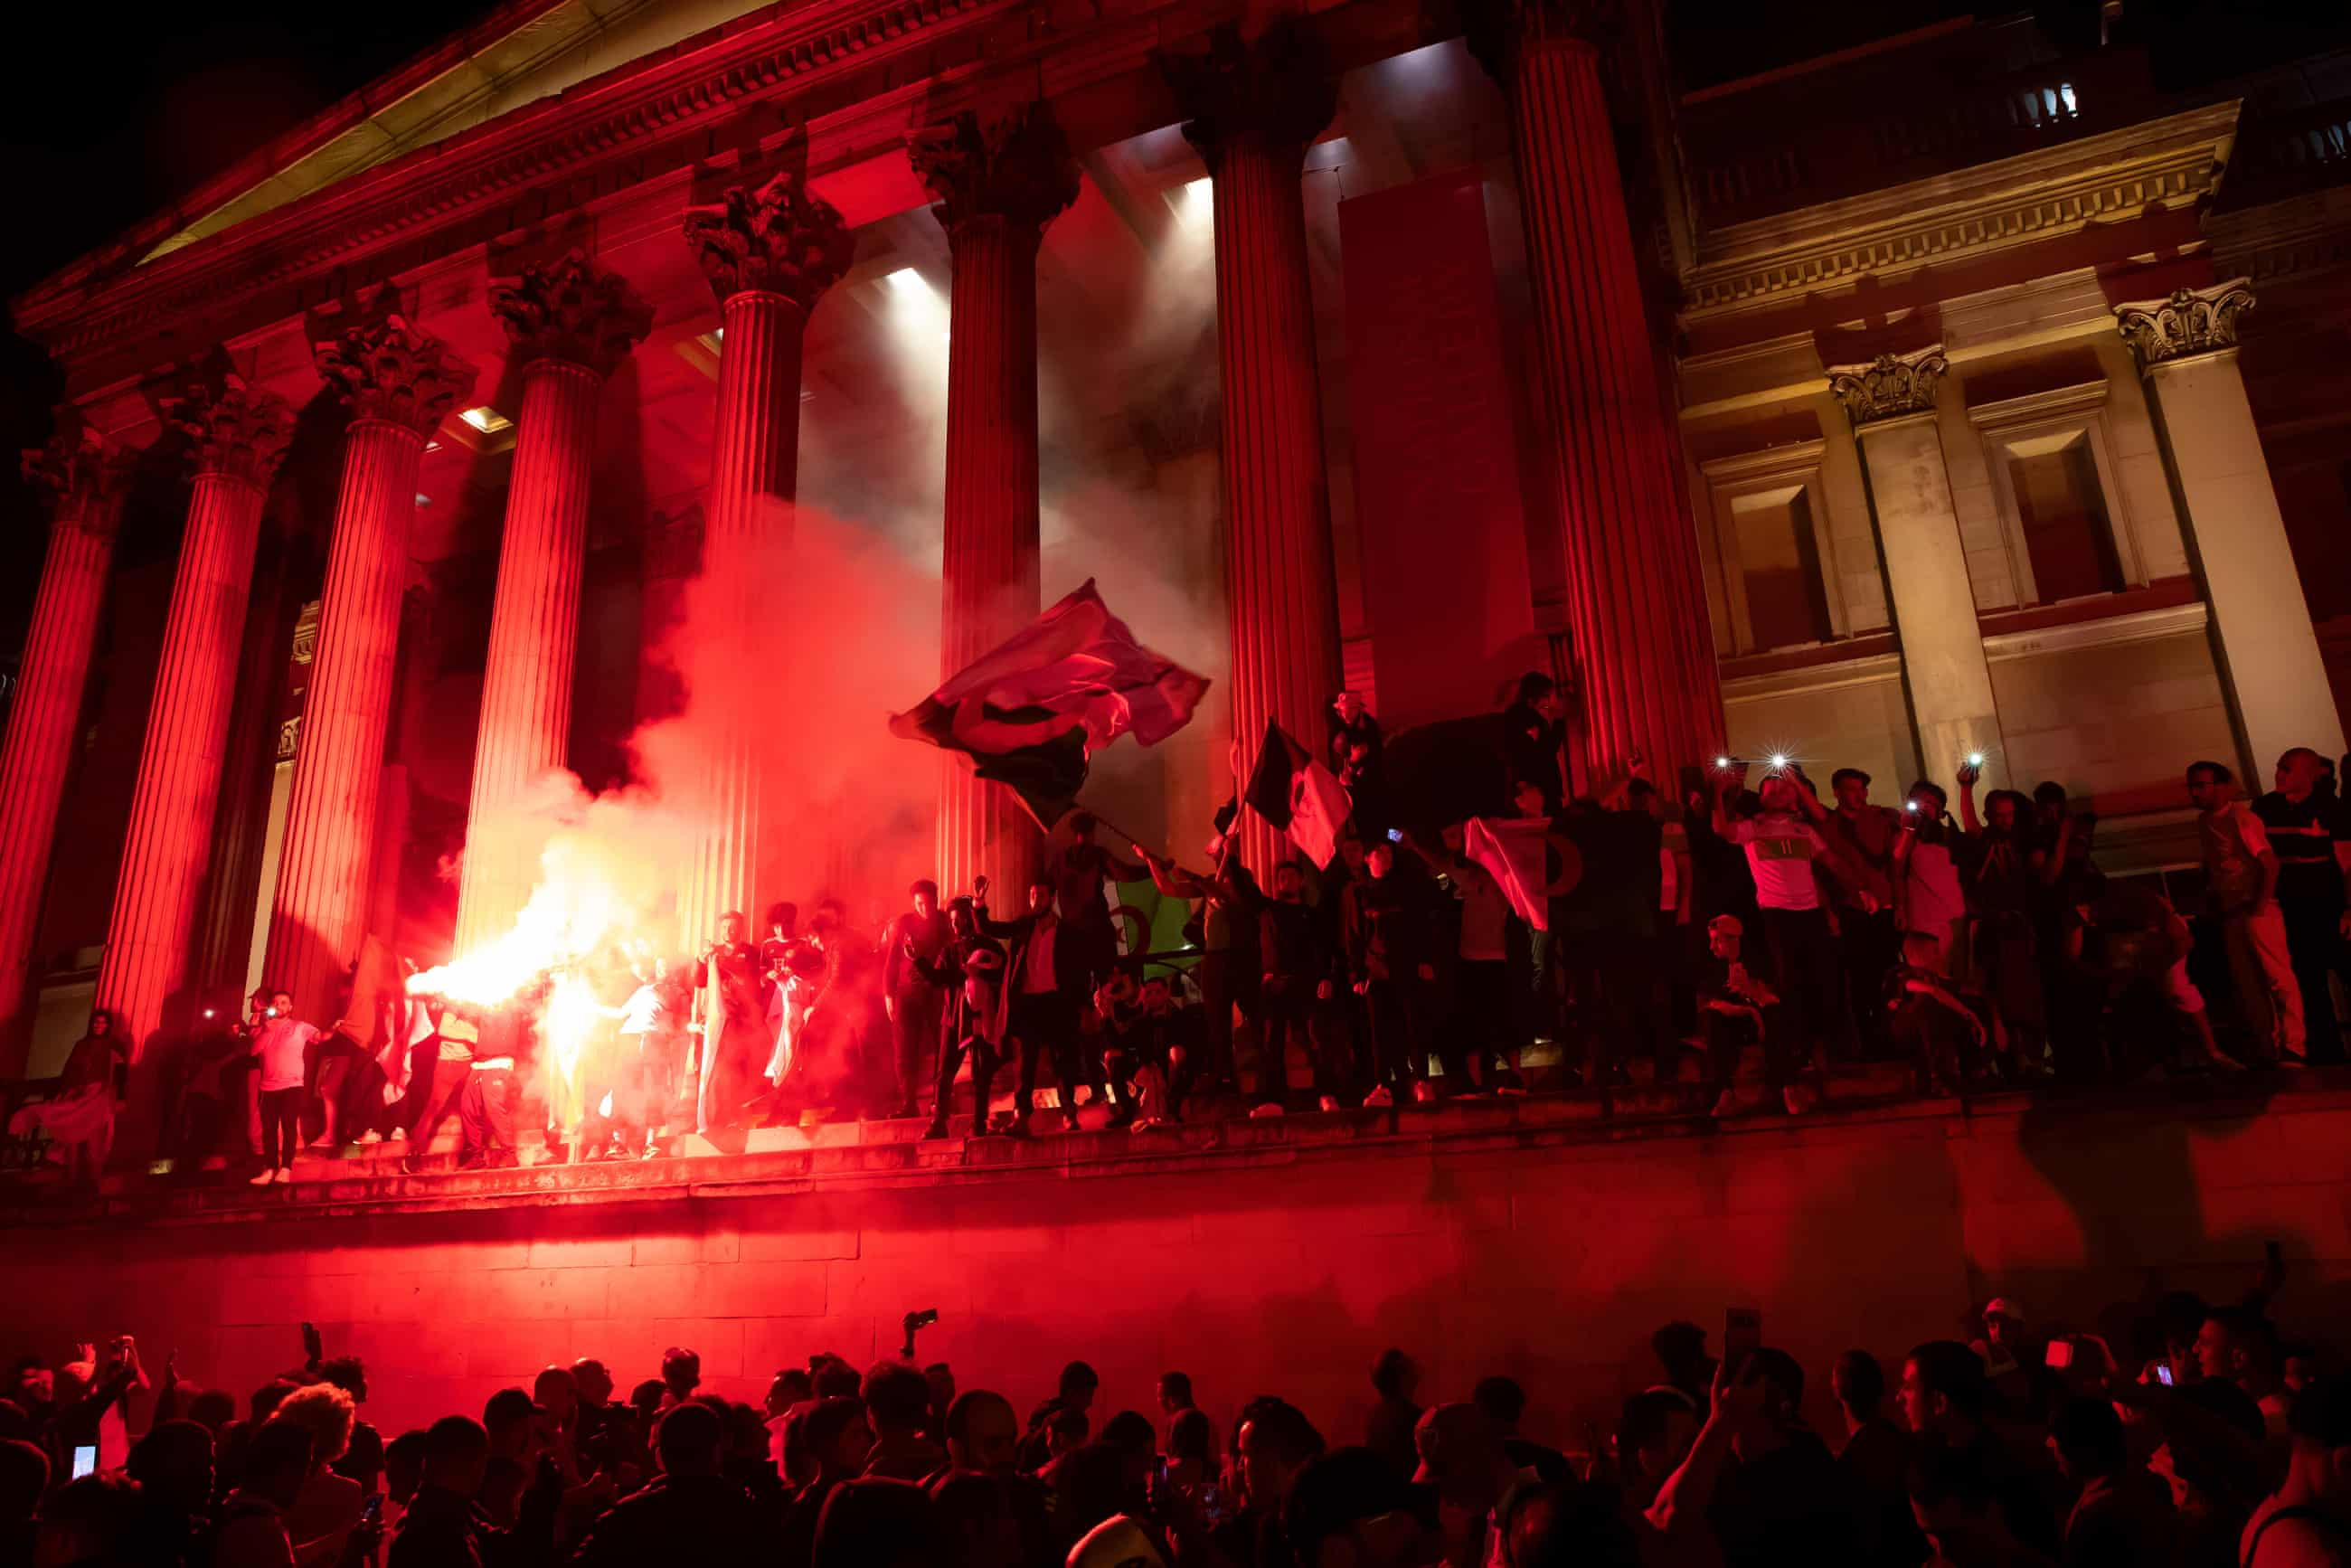 Algeria fans light up London after Afcon triumph – in pictures